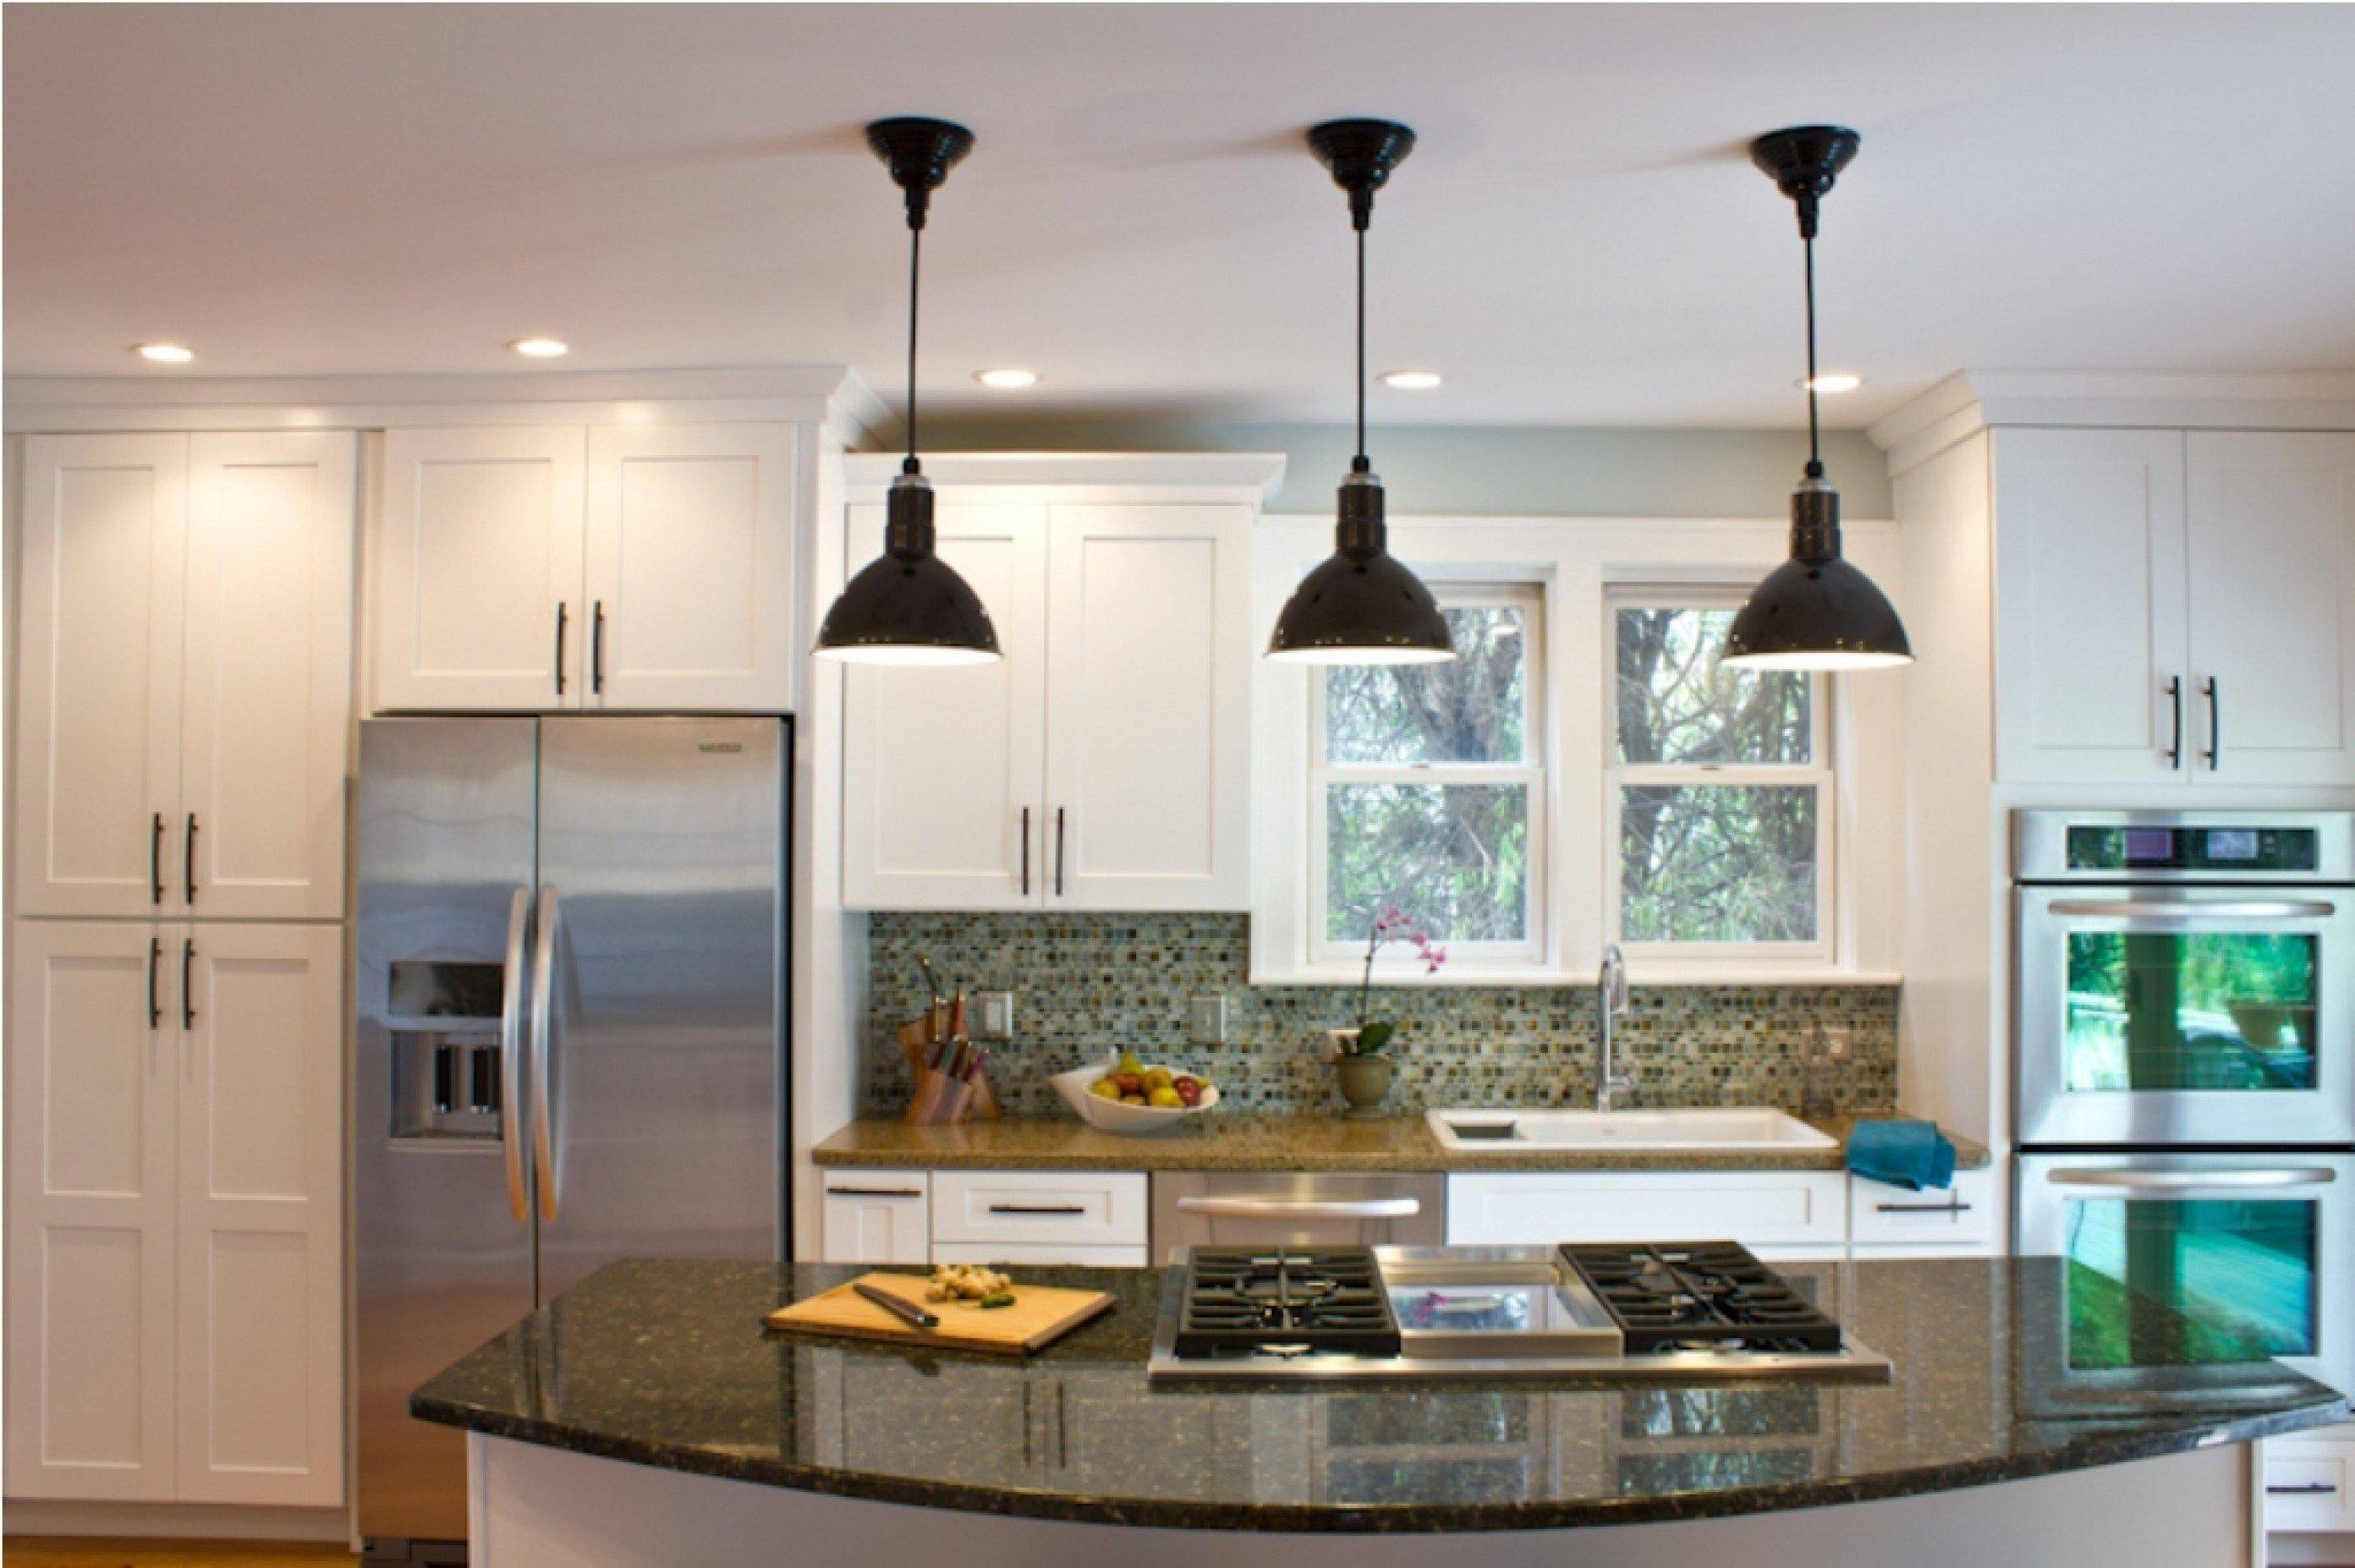 light pendants over kitchen islands awesome collect idea strategic kitchen lighting 0d chandeliers new kitchen